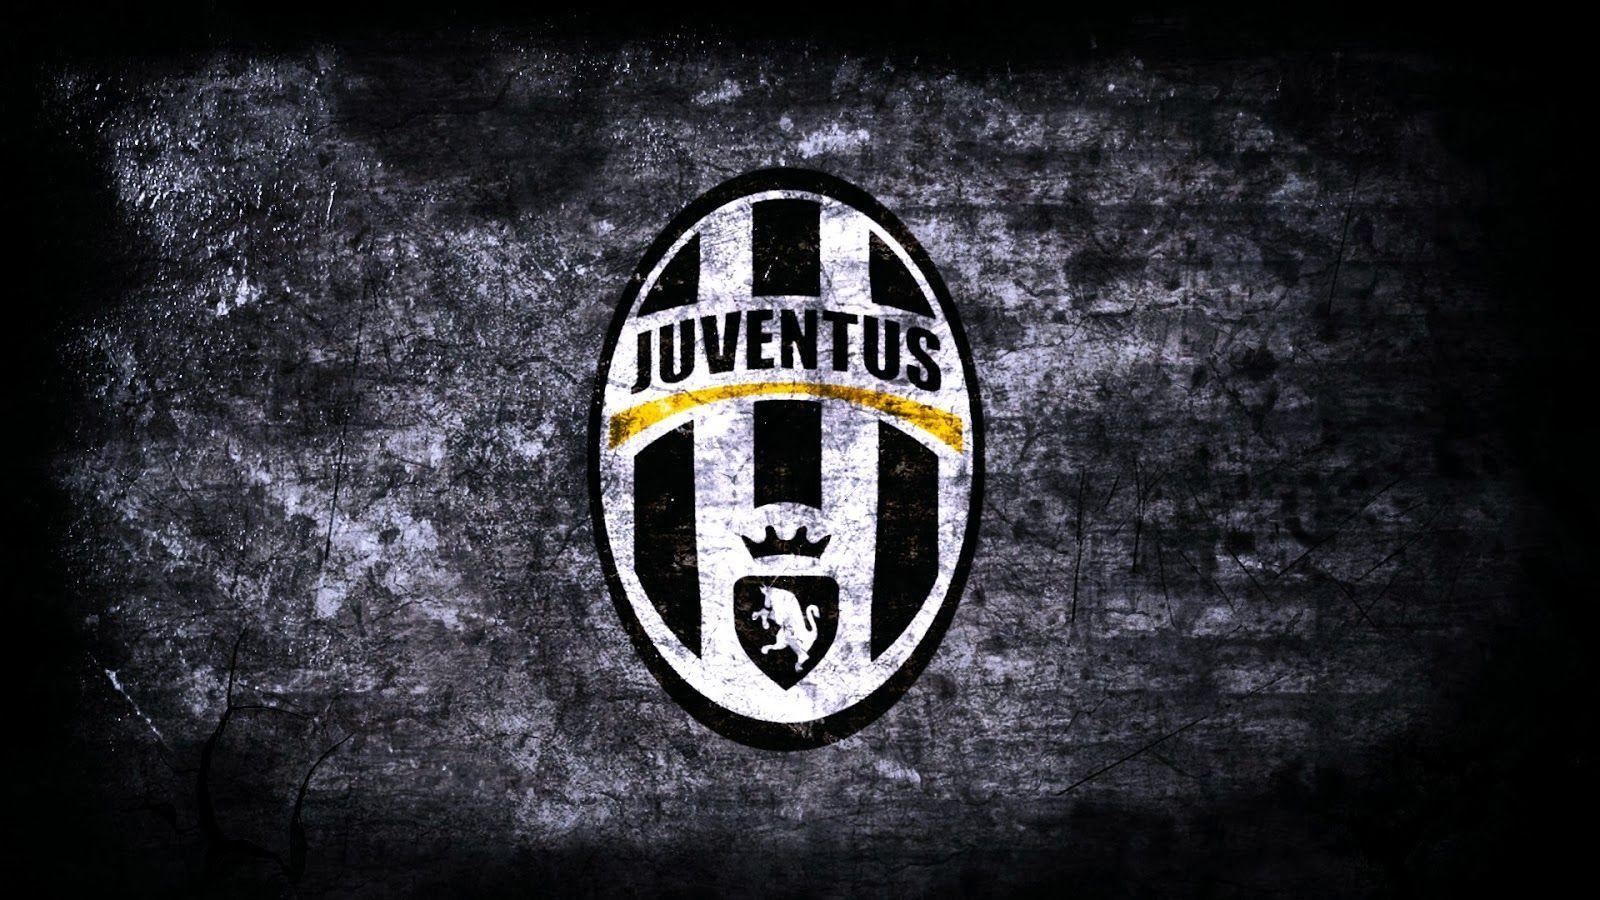 juventus - photo #12